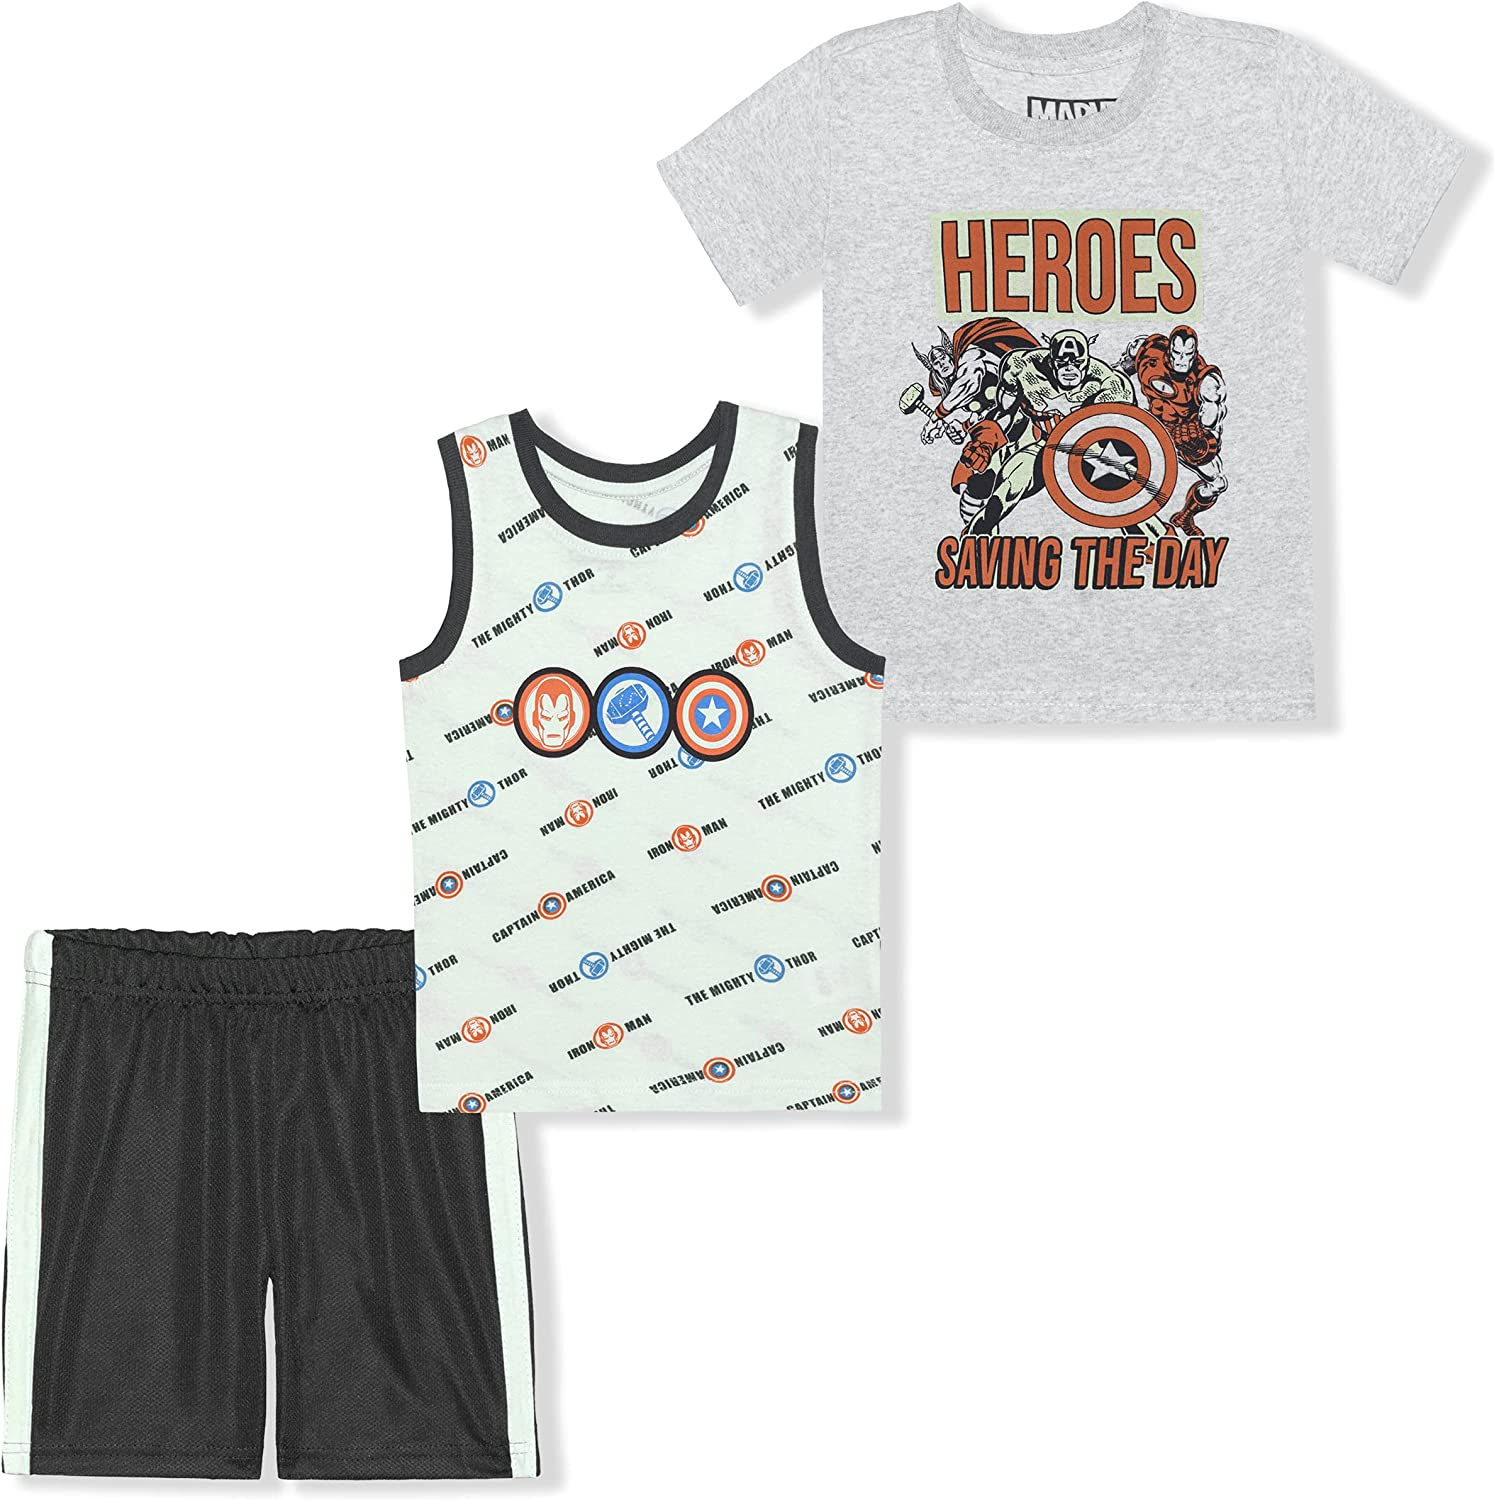 4 years High material warranty Marvel Heroes Boy's 3-Pack Saving Tee Shirt Sleeveless The Day